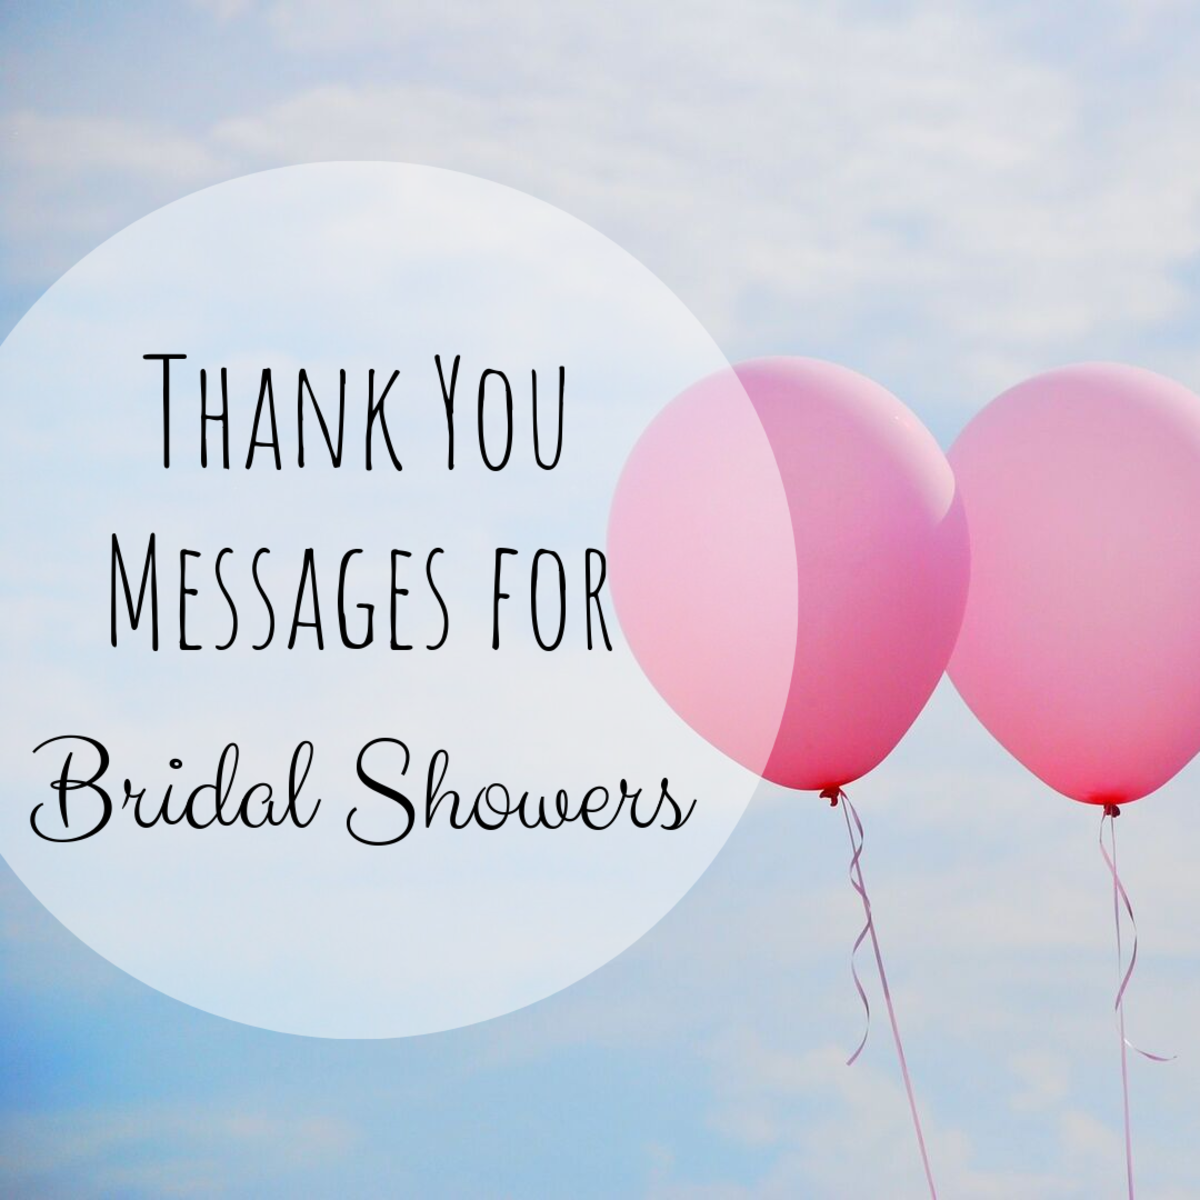 Wedding Gift Thank You Notes Wording: What To Write In A Bridal Shower Thank You Note: Wording